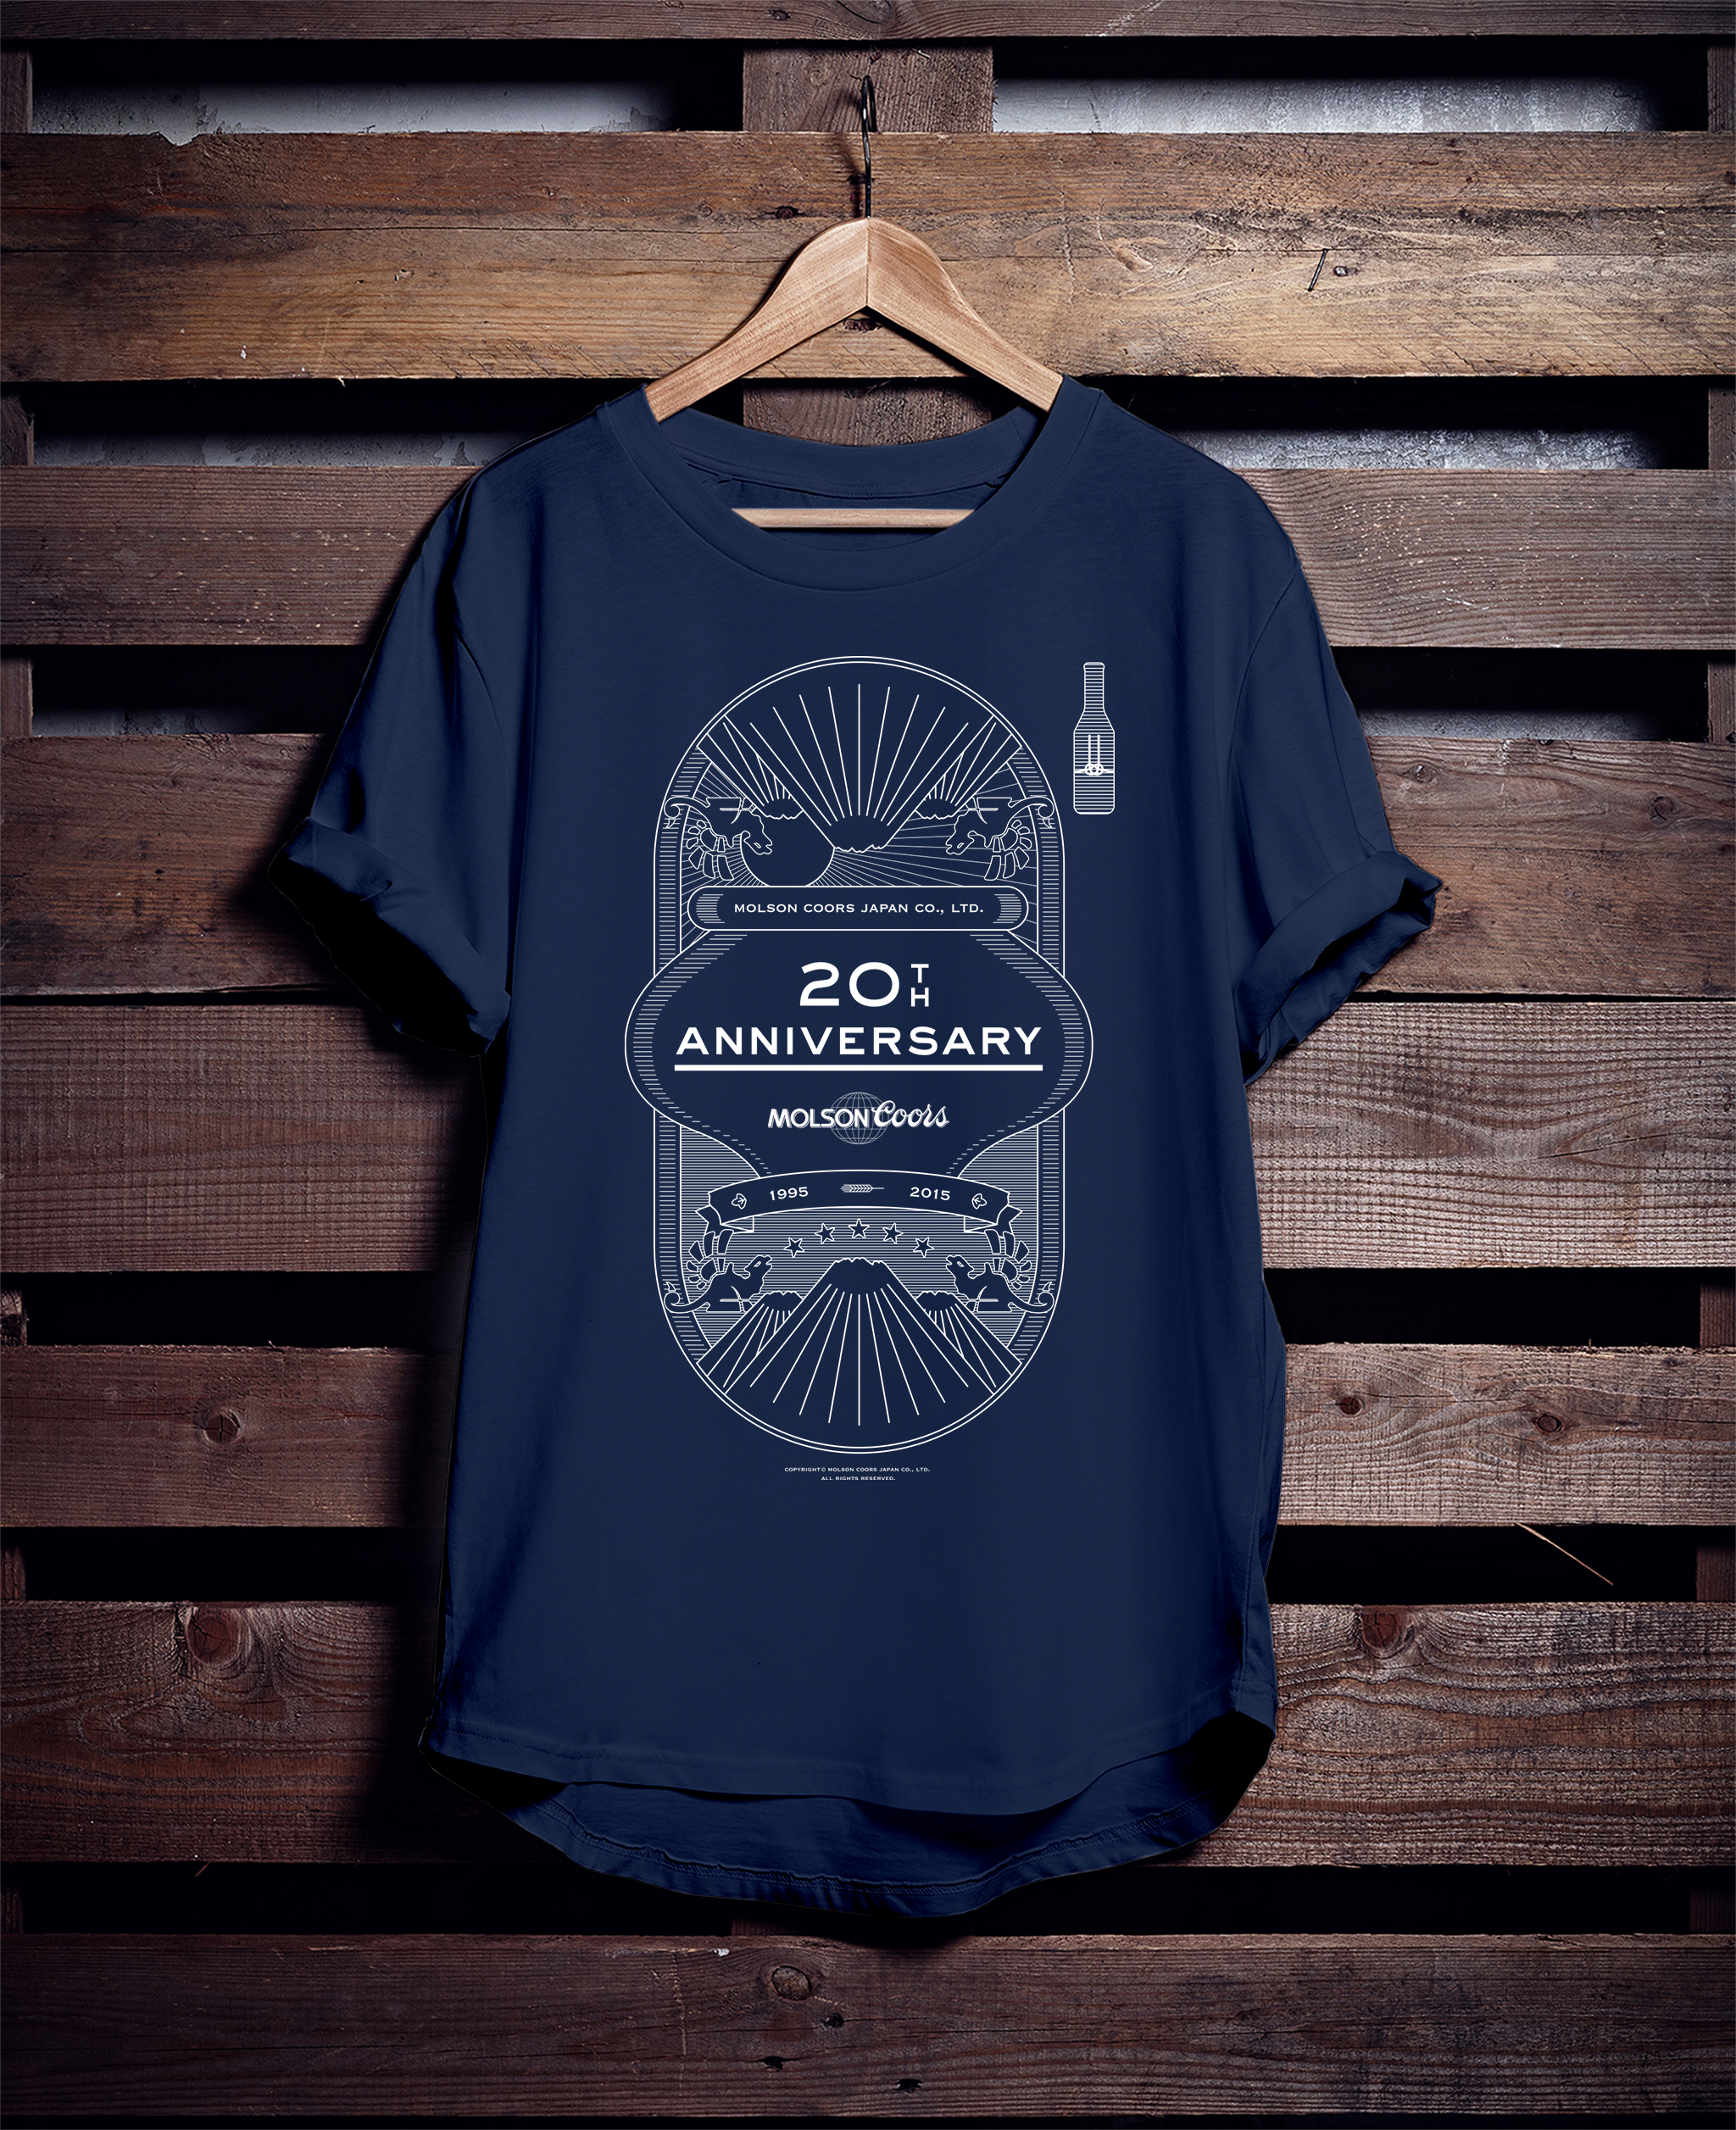 Molson Coors Japan 20th anniversary T-shirt